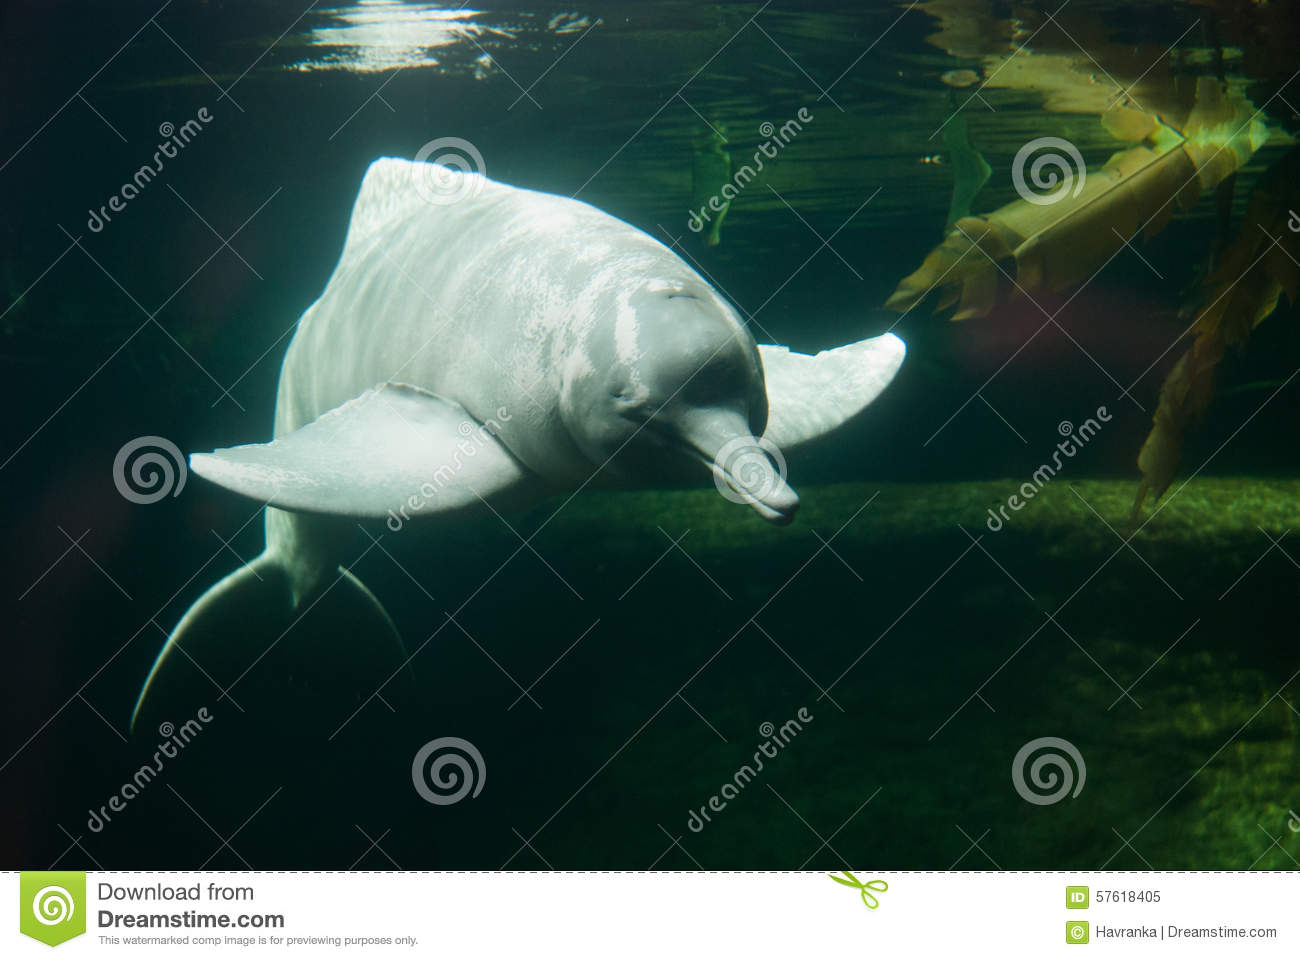 Amazon river dolphin stock image. Image of doplhin, closeup - 57618405